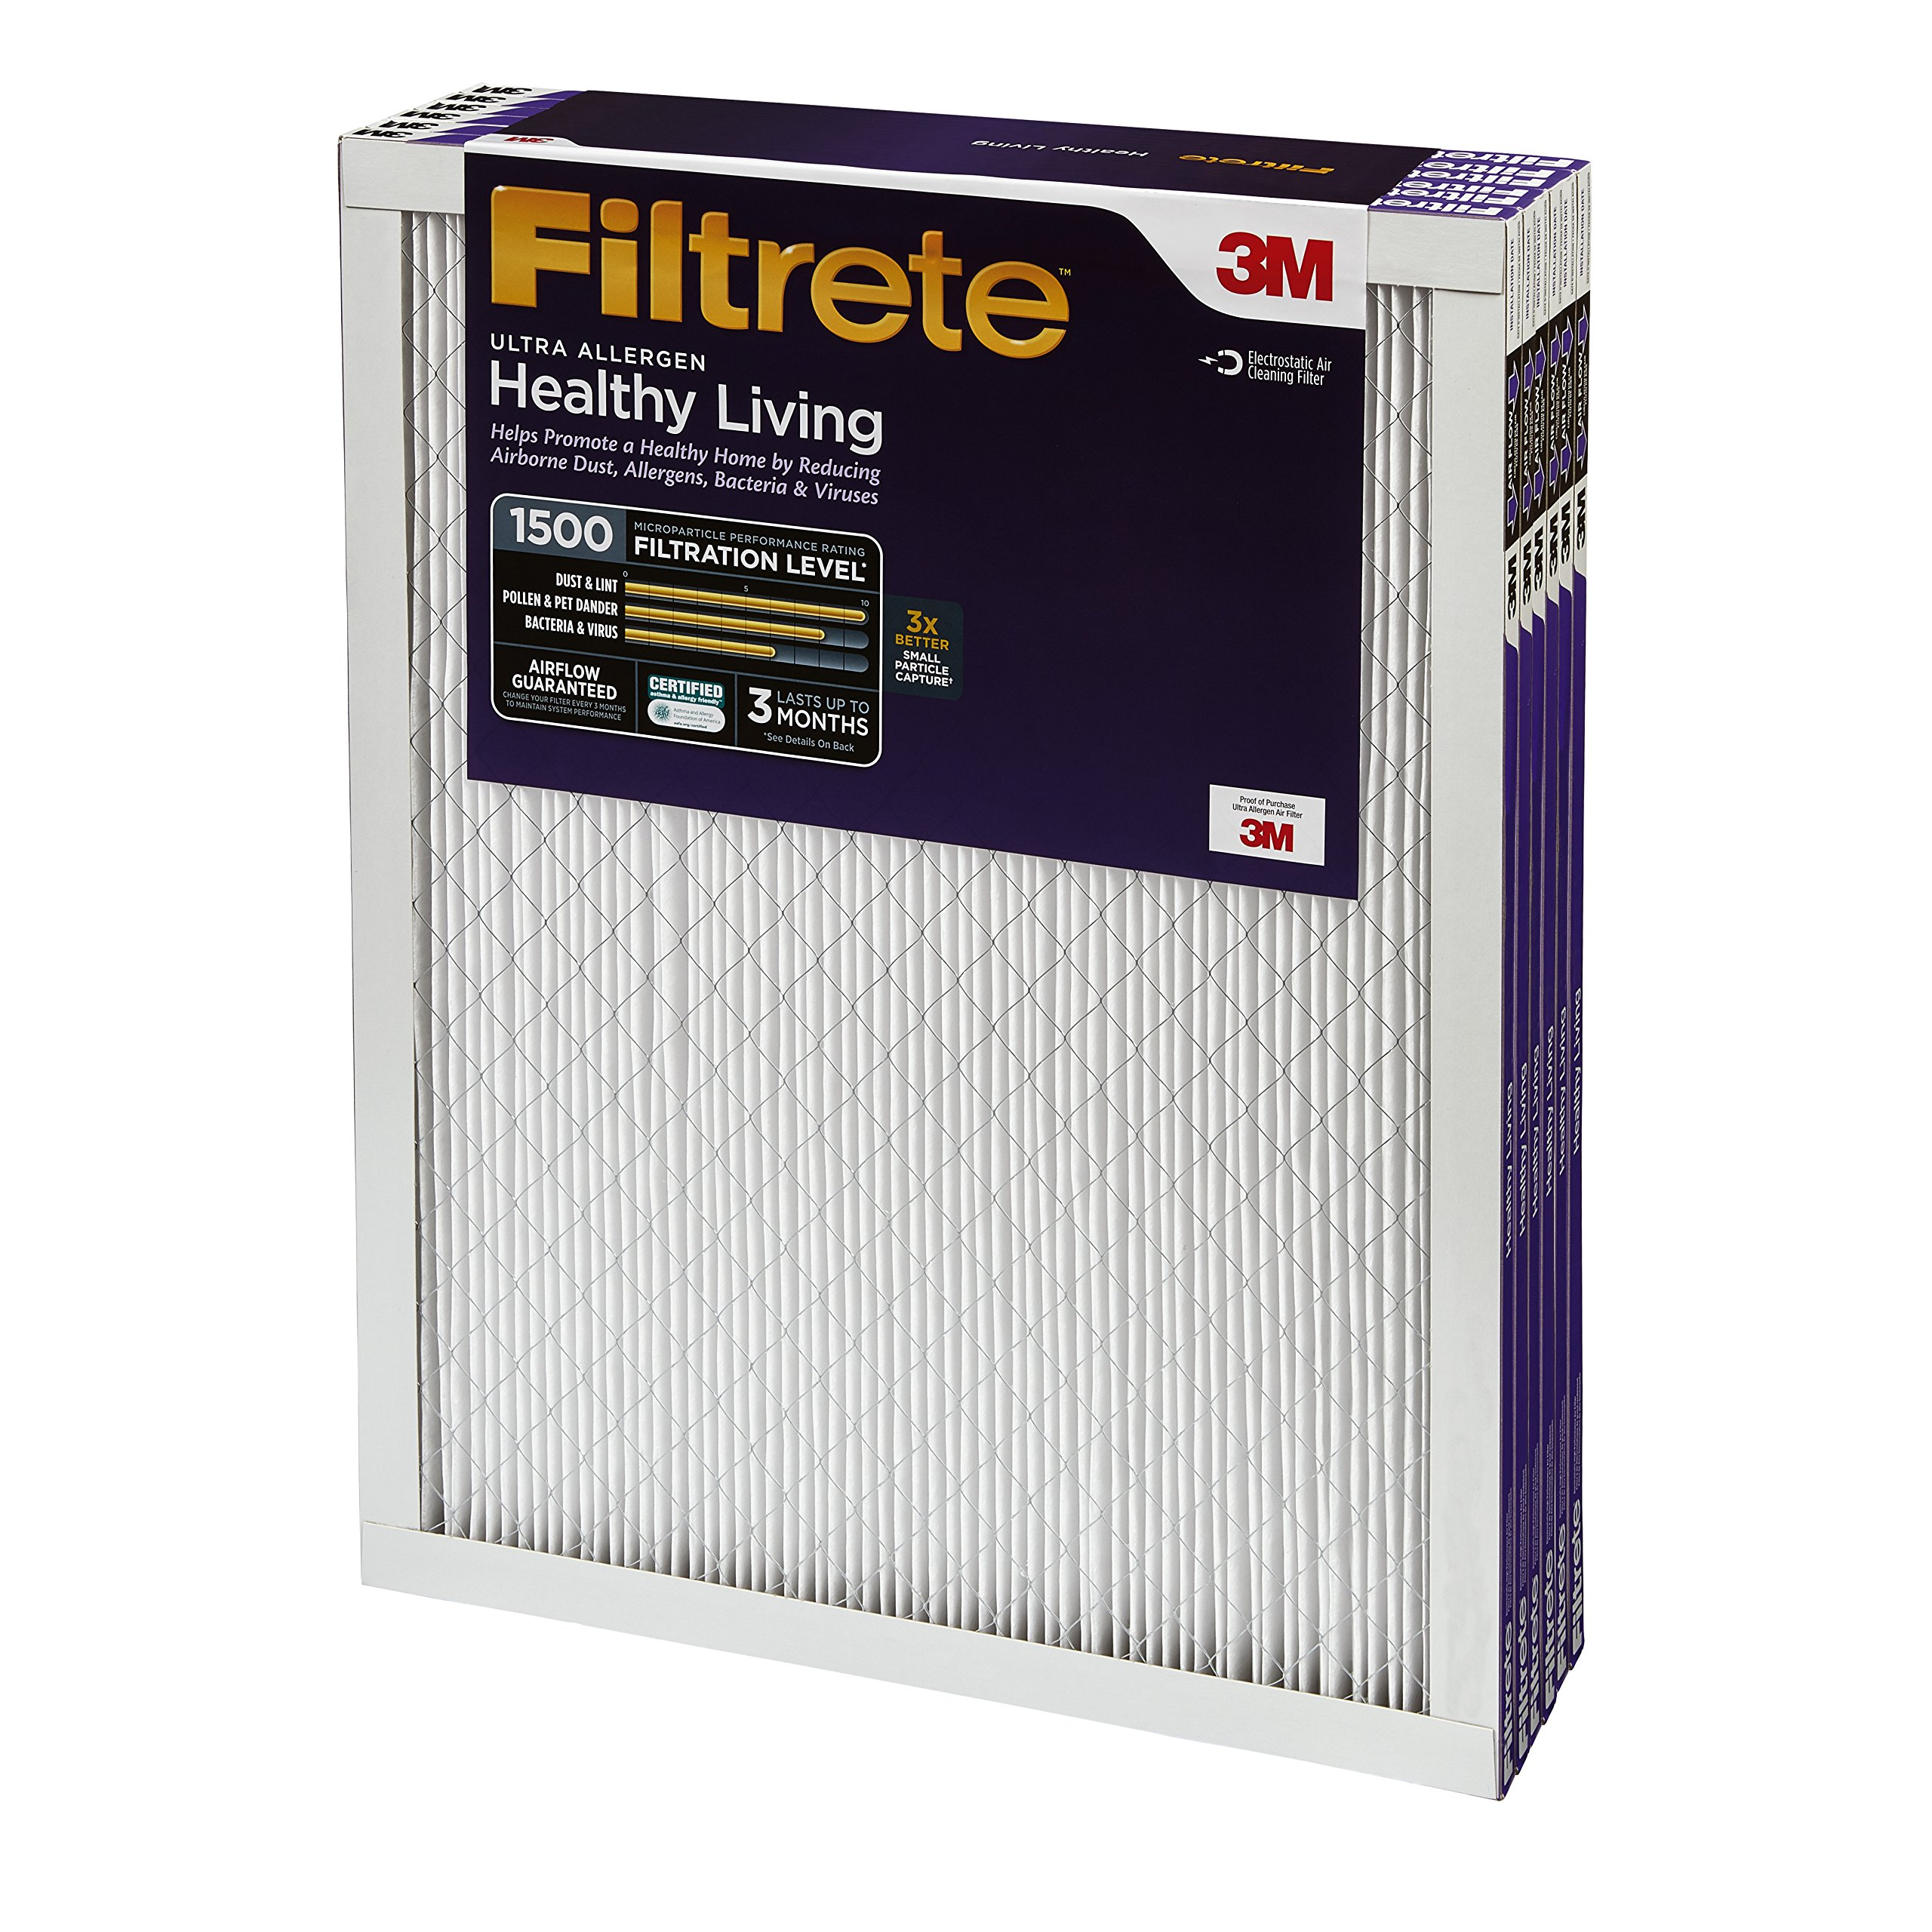 Filtrete MPR 1500 12 x 24 x 1 Healthy Living Ultra Allergen Reduction HVAC Air Filter, 6-Pack by 3M (Image #2)